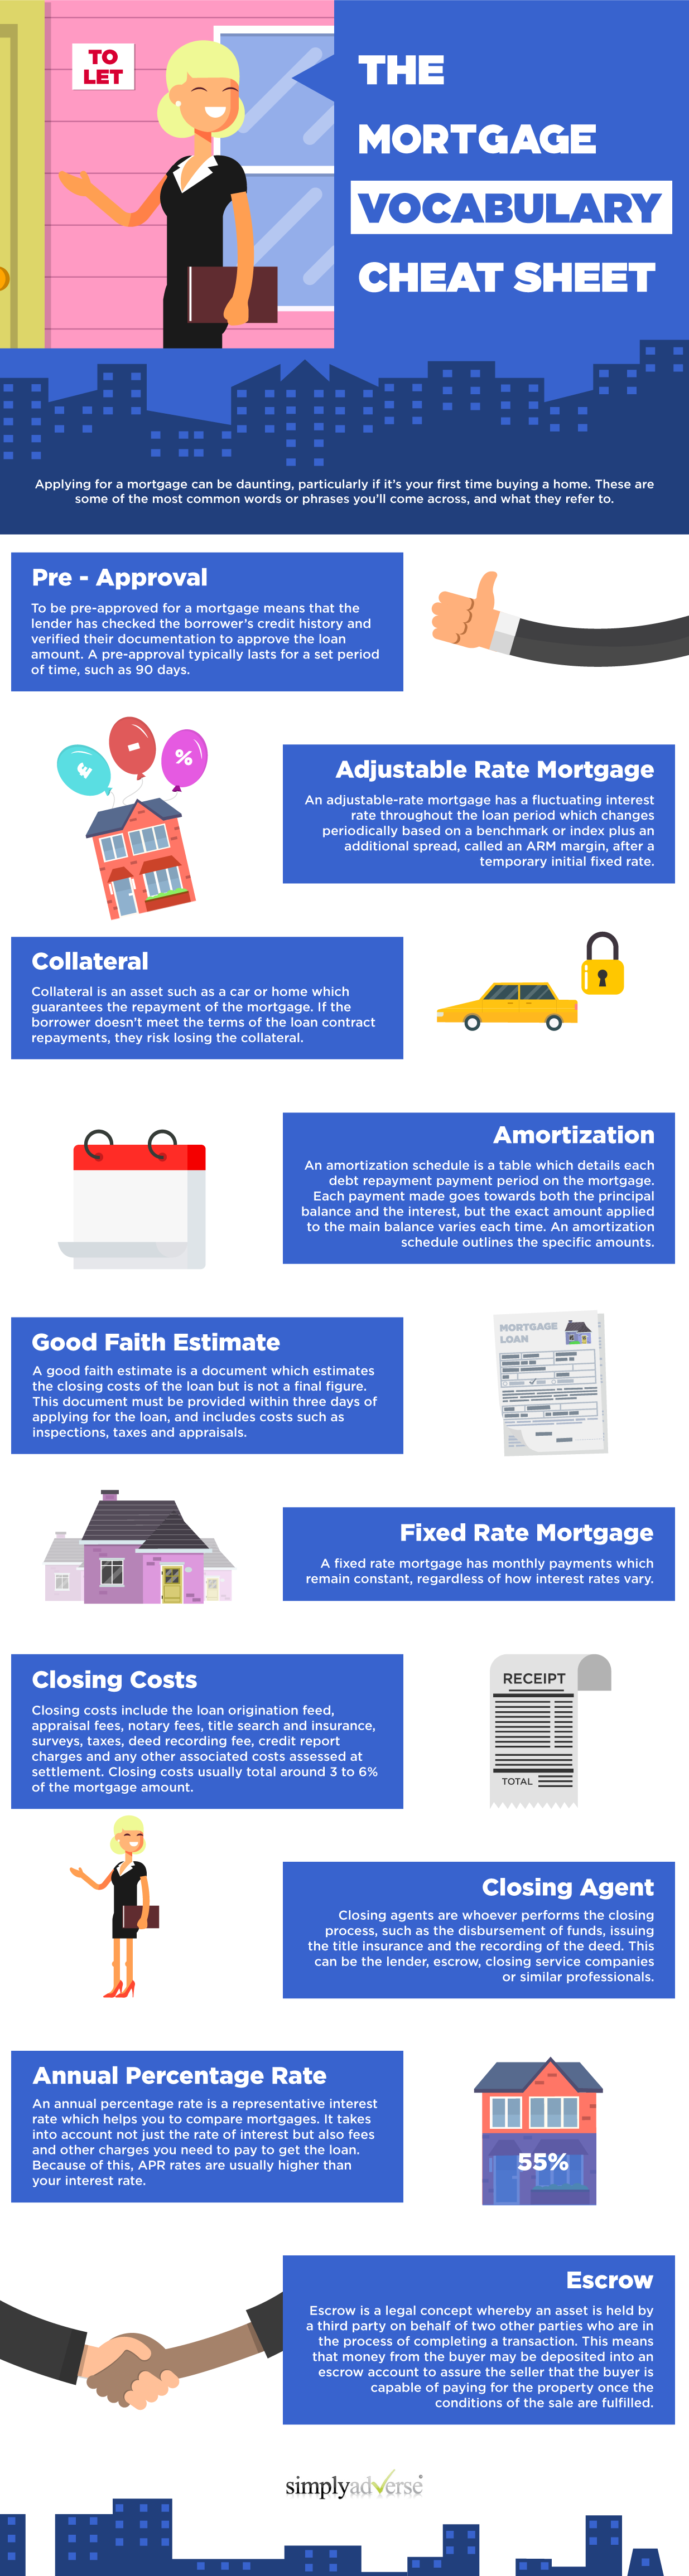 The mortgage vocabulary cheat sheet